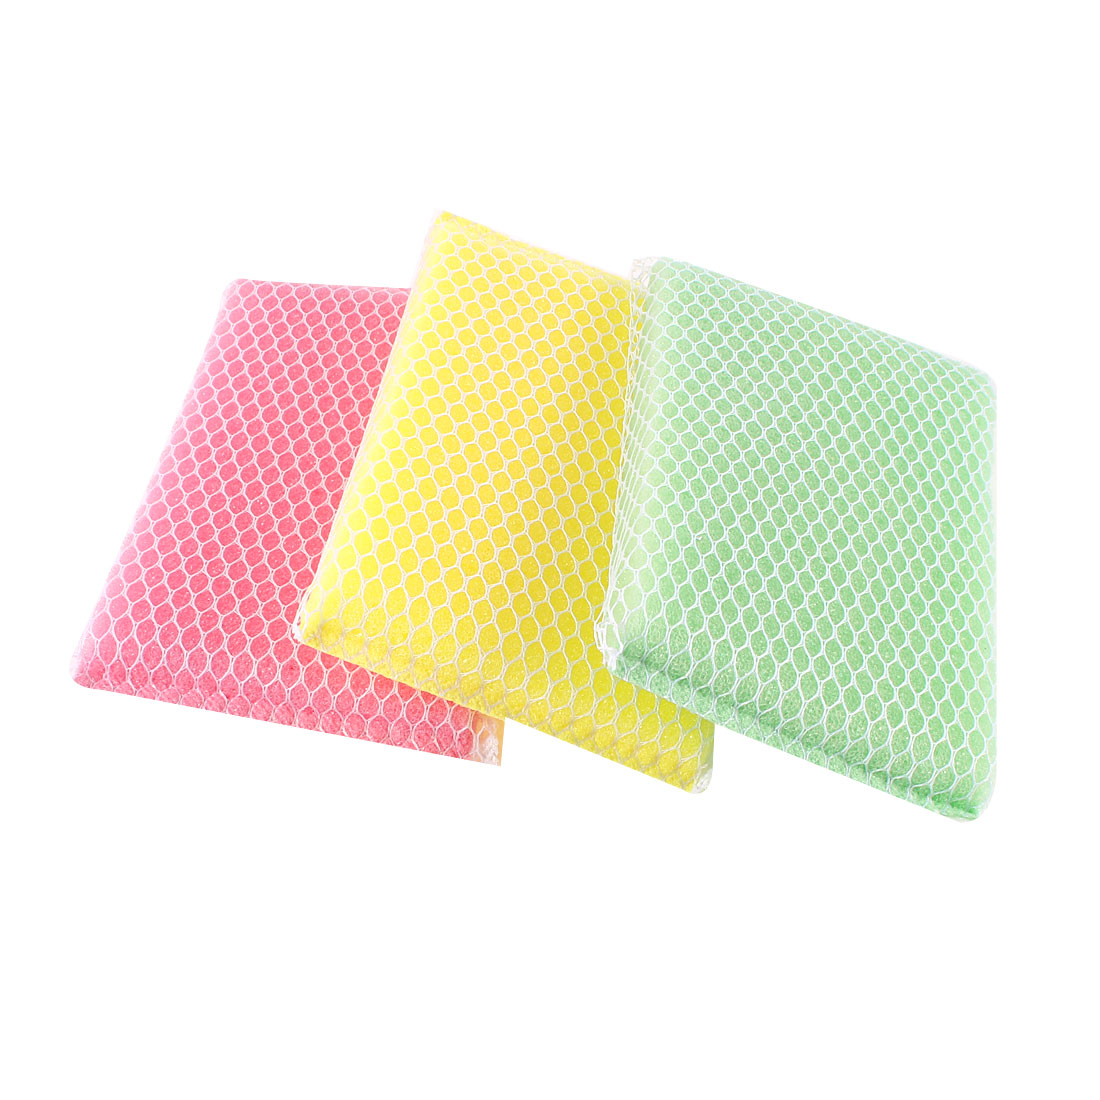 3 Pcs White Rectangle Netting Three Colors Sponge Washinbg Block